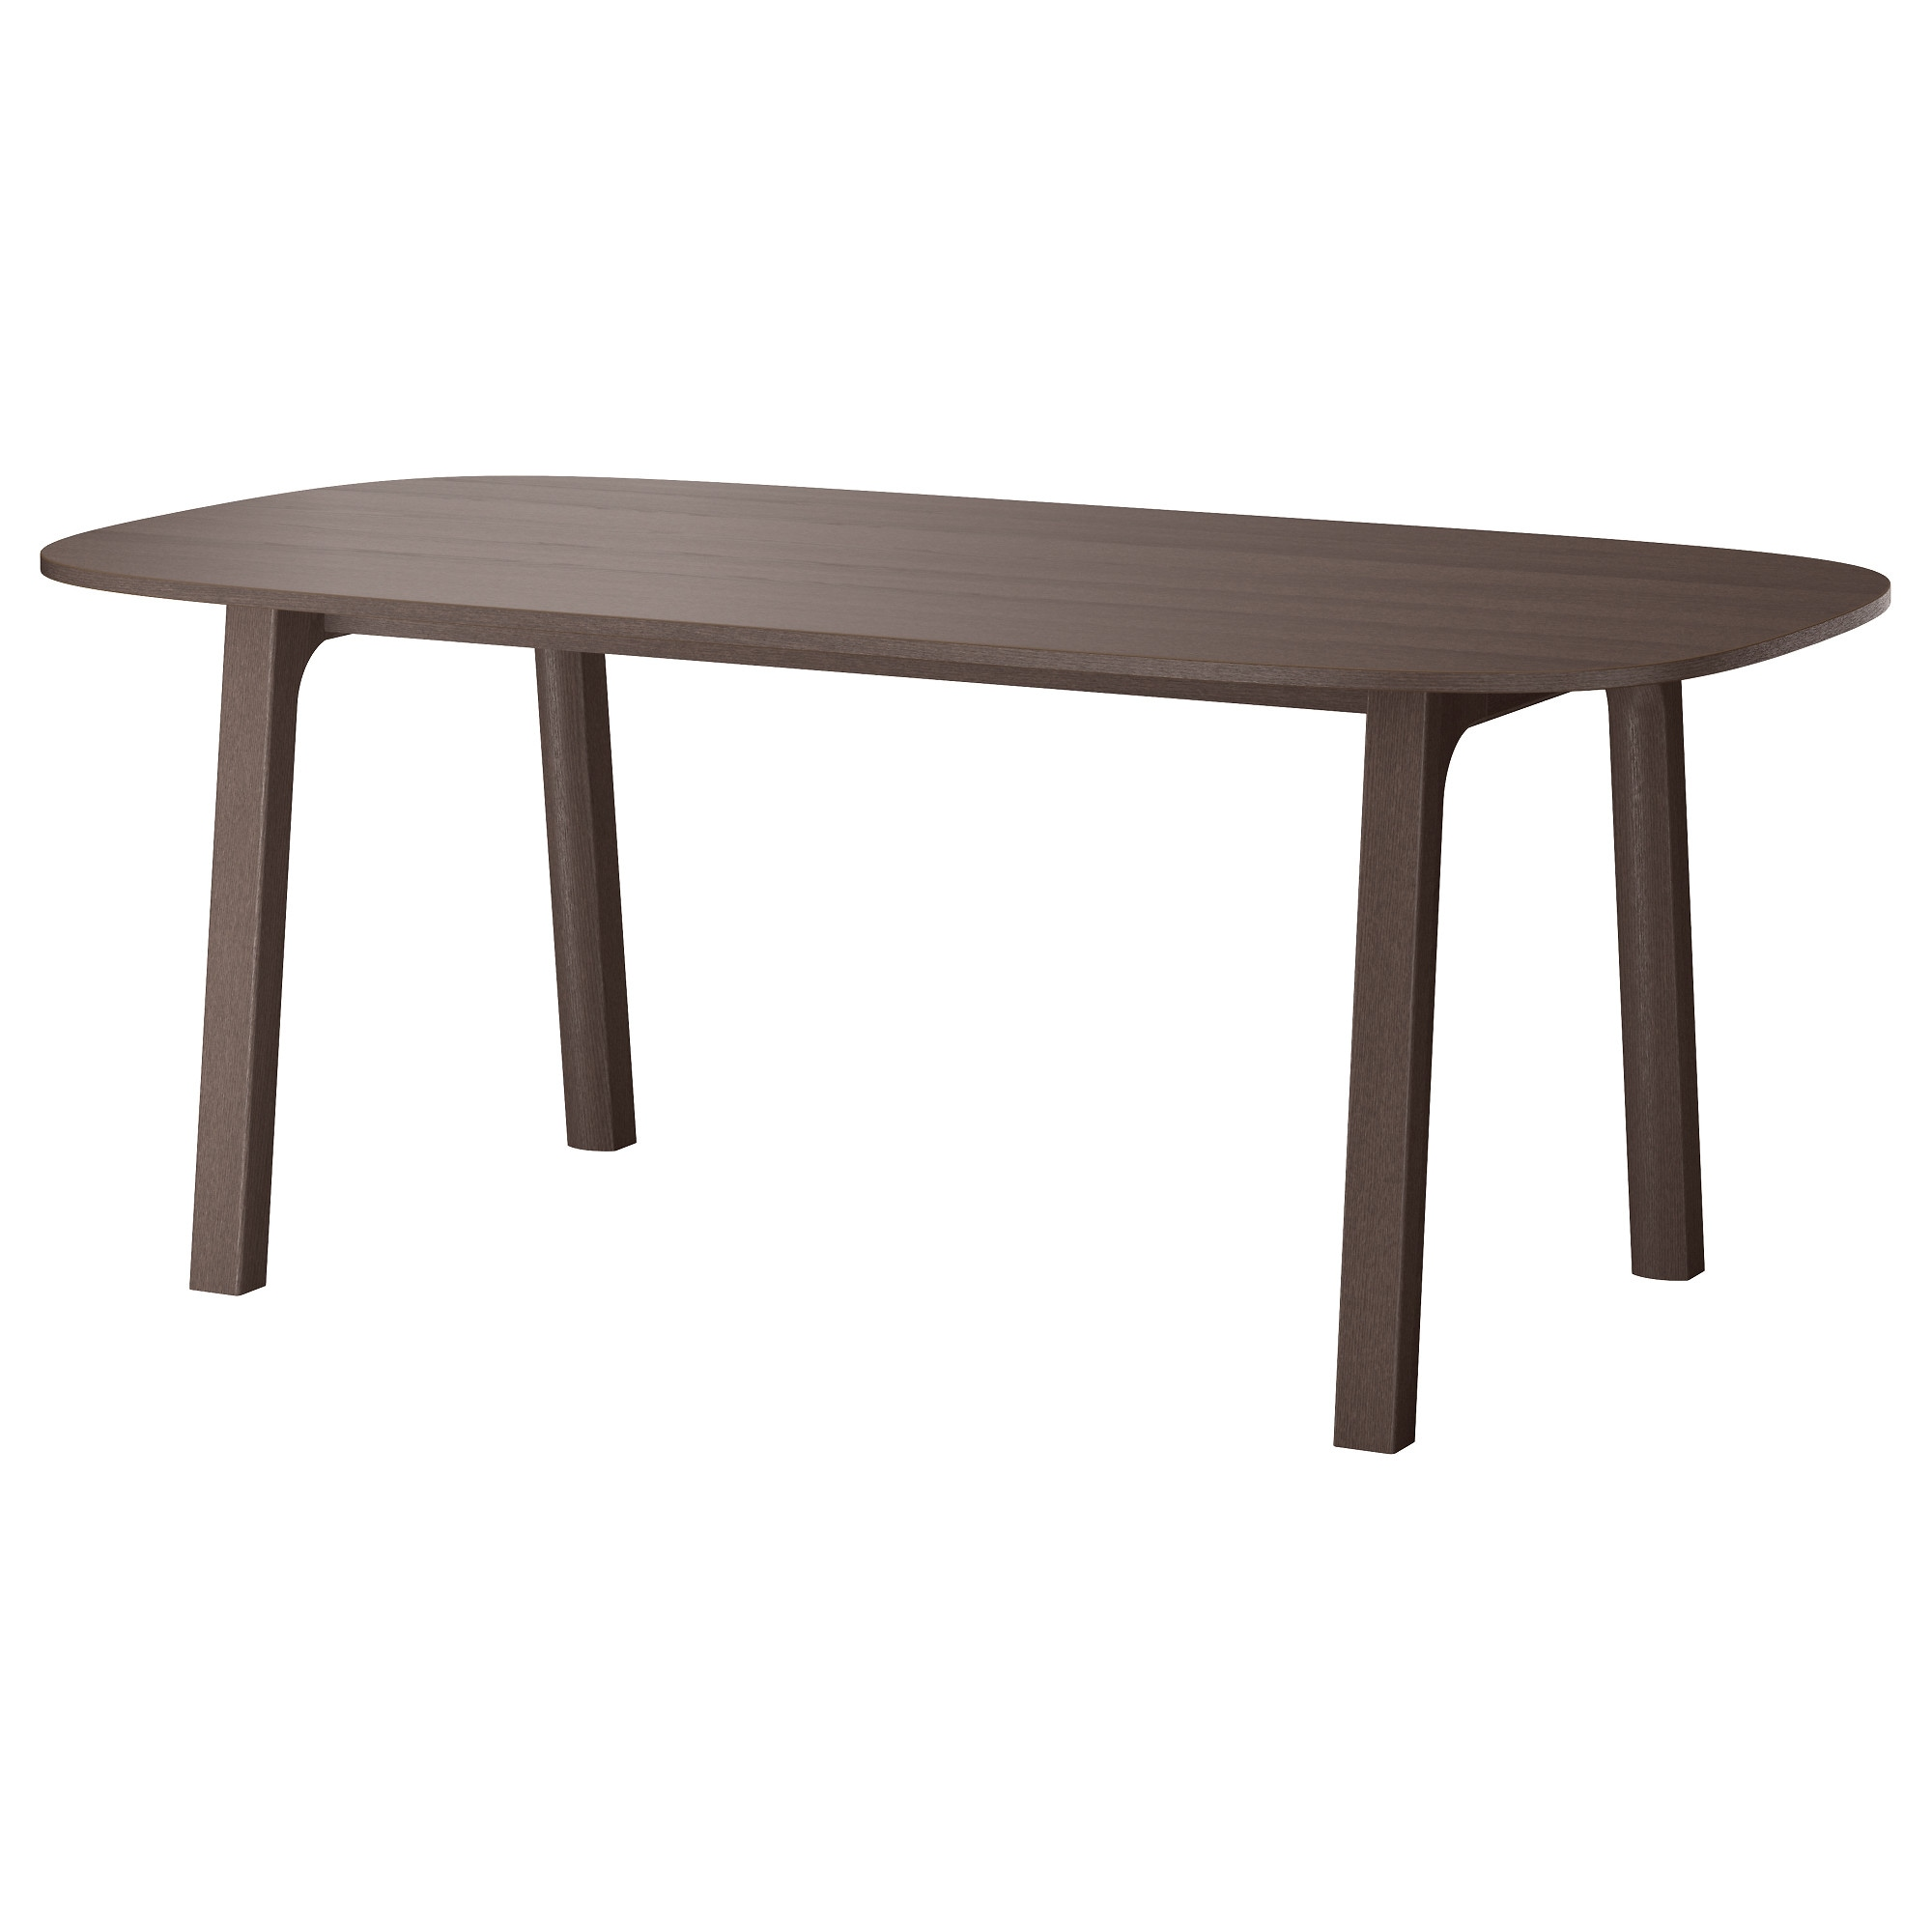 Table laqu blanc ikea fabulous bjursta nisse table et chaise plaqu chne blan - Ikea tables gigognes ...